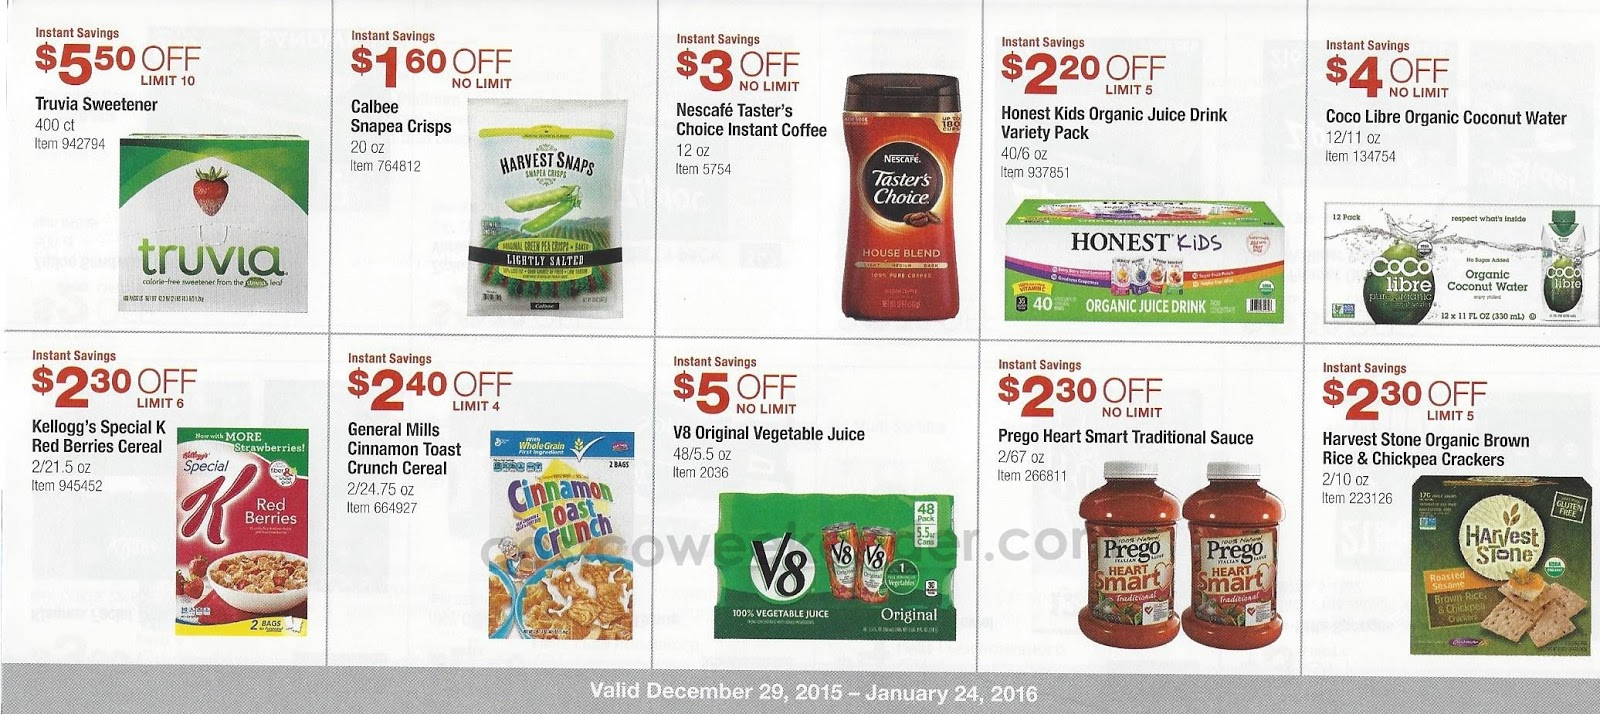 Current costco coupons